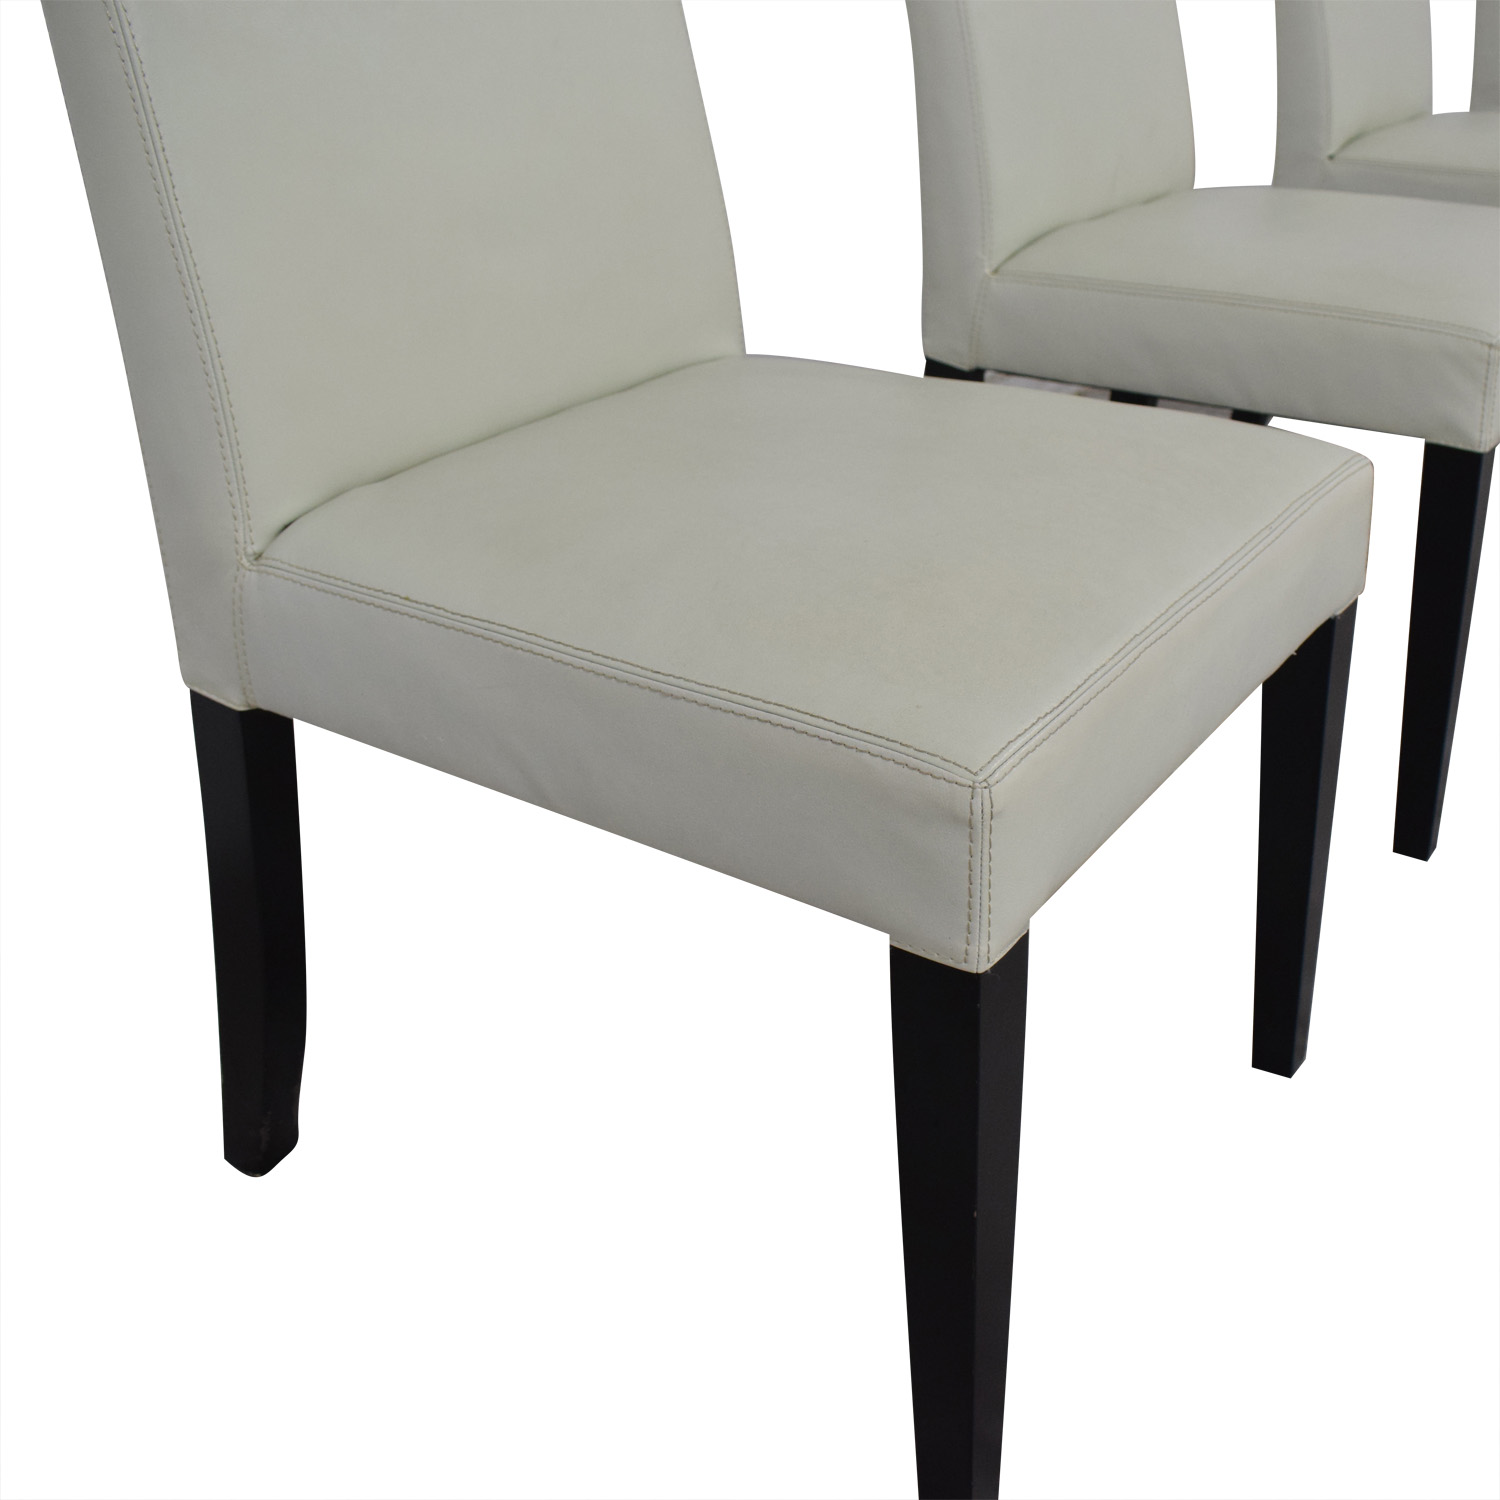 Crate And Barrel Dining Sets: Crate & Barrel Crate & Barrel White Leather